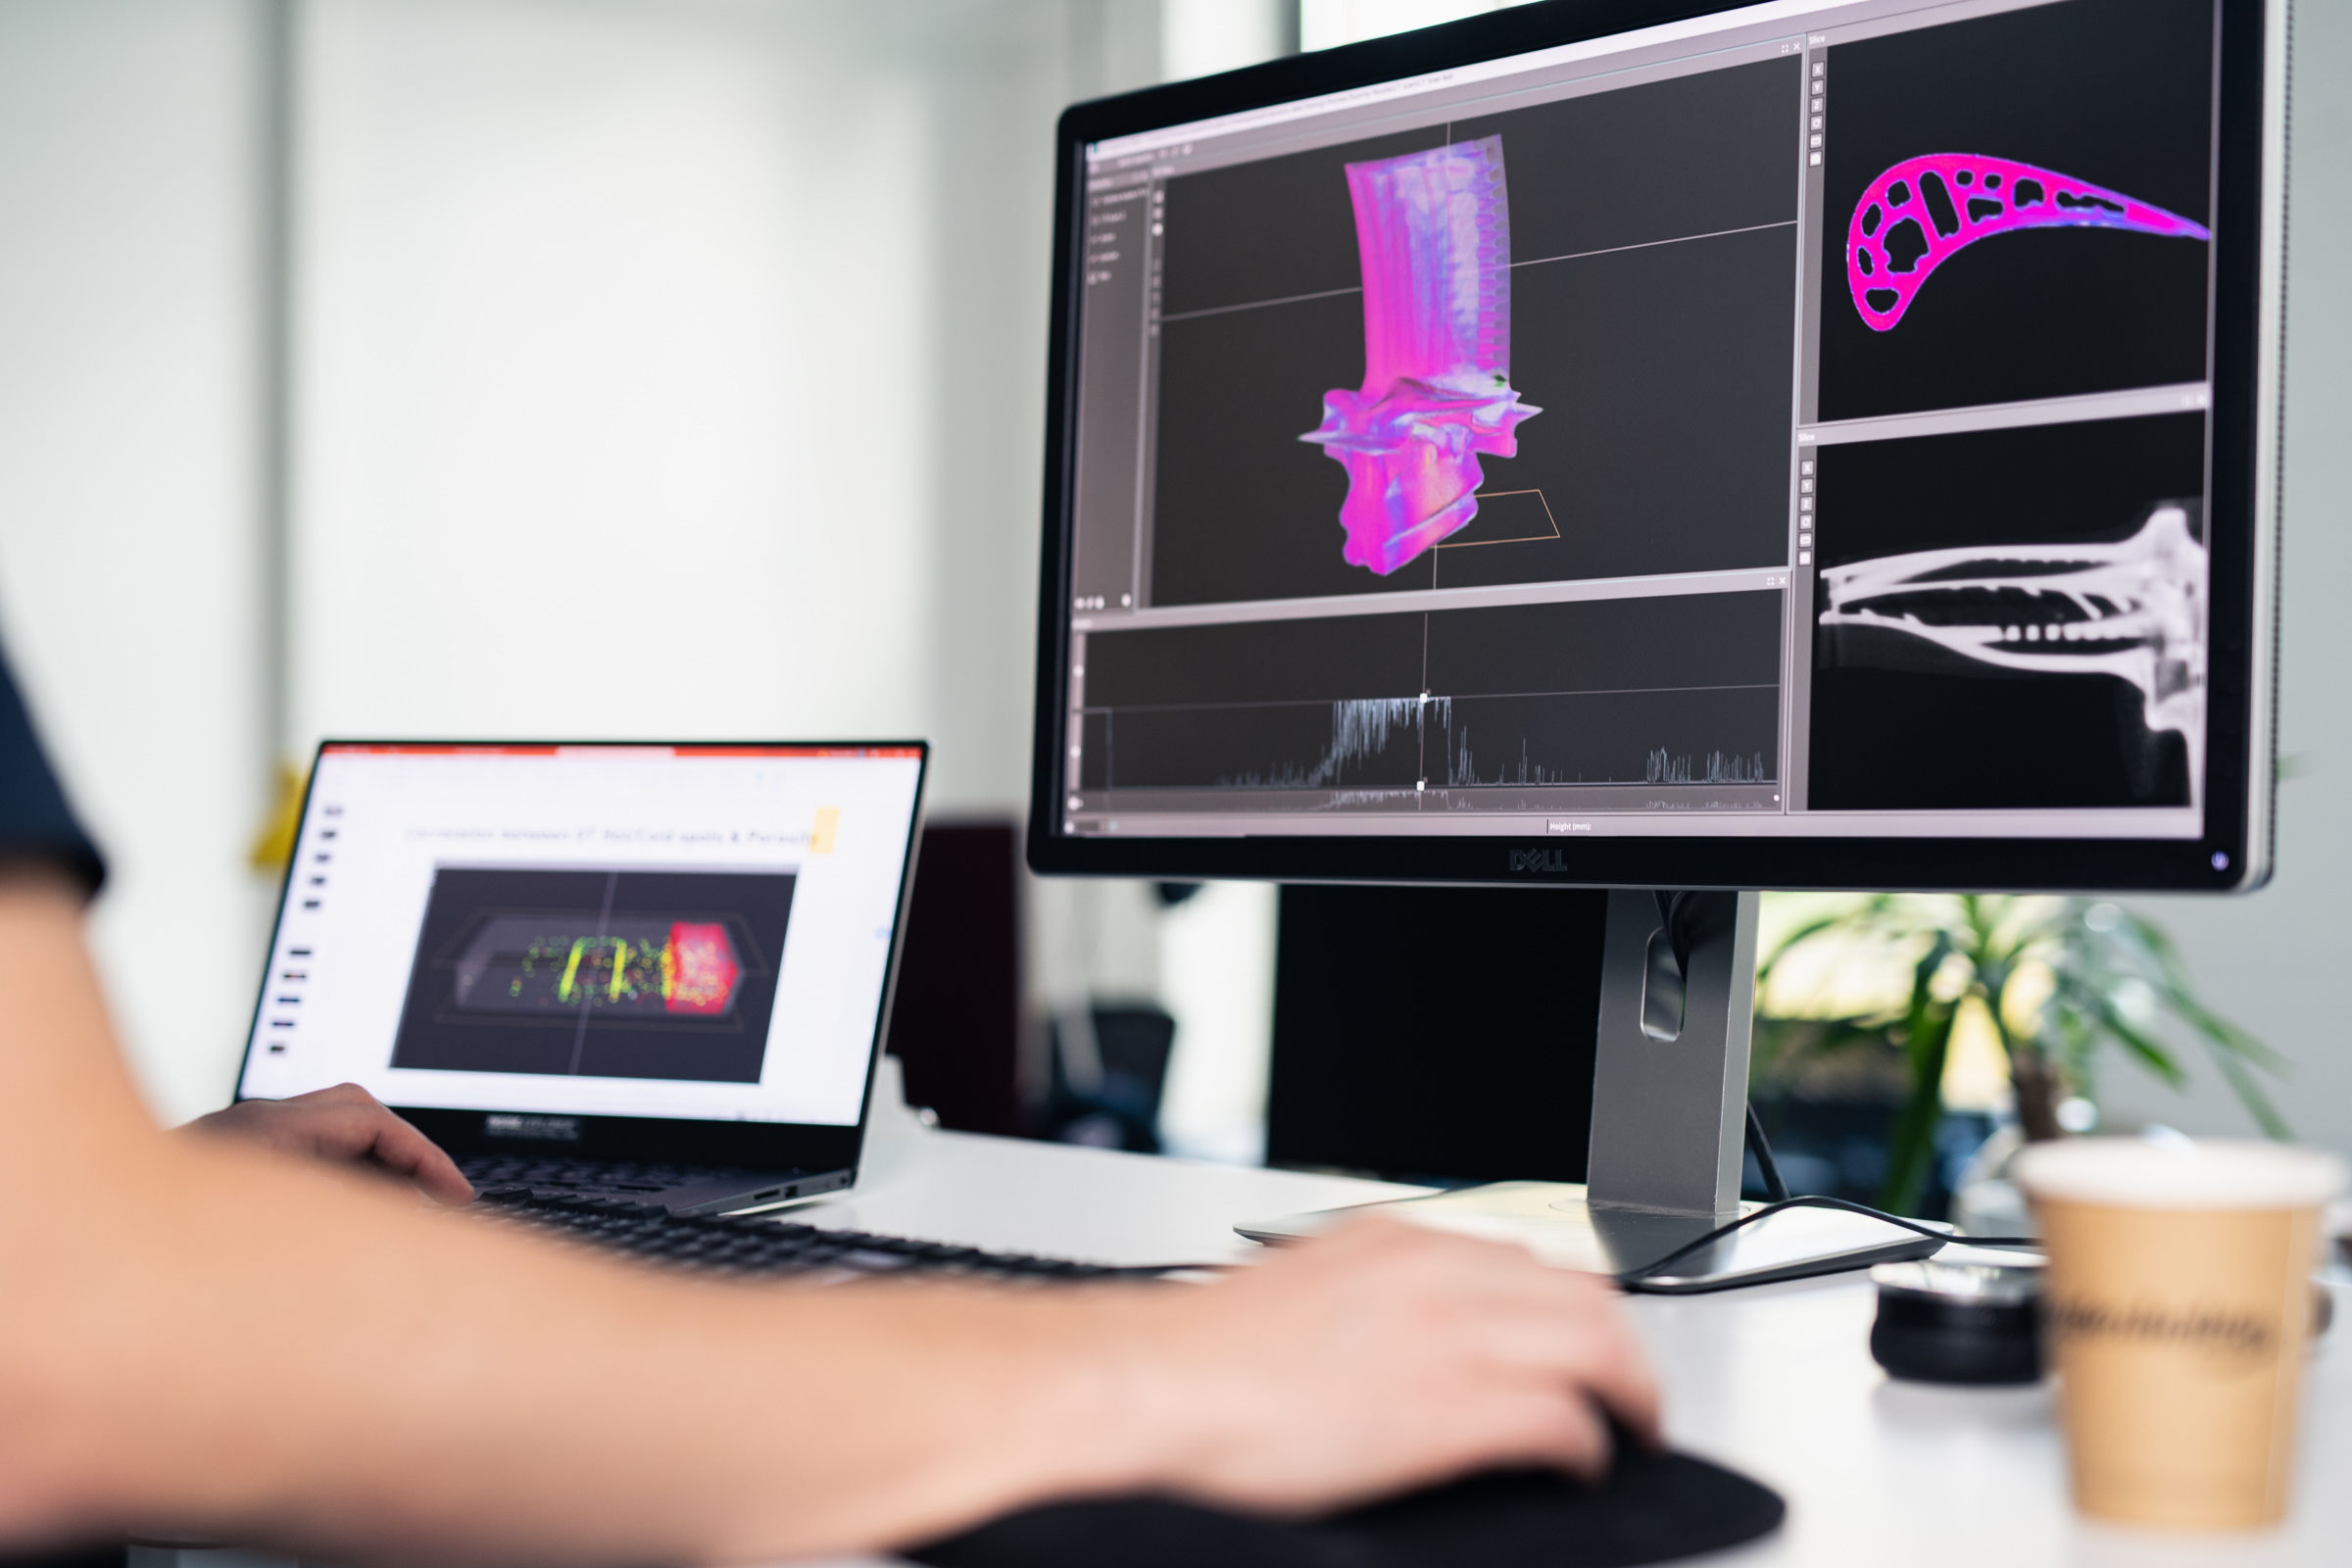 The first step in enabling far-reaching intricate designs and further pushing the possibilities of Additive Manufacturing is to see and understand what really has been printed.